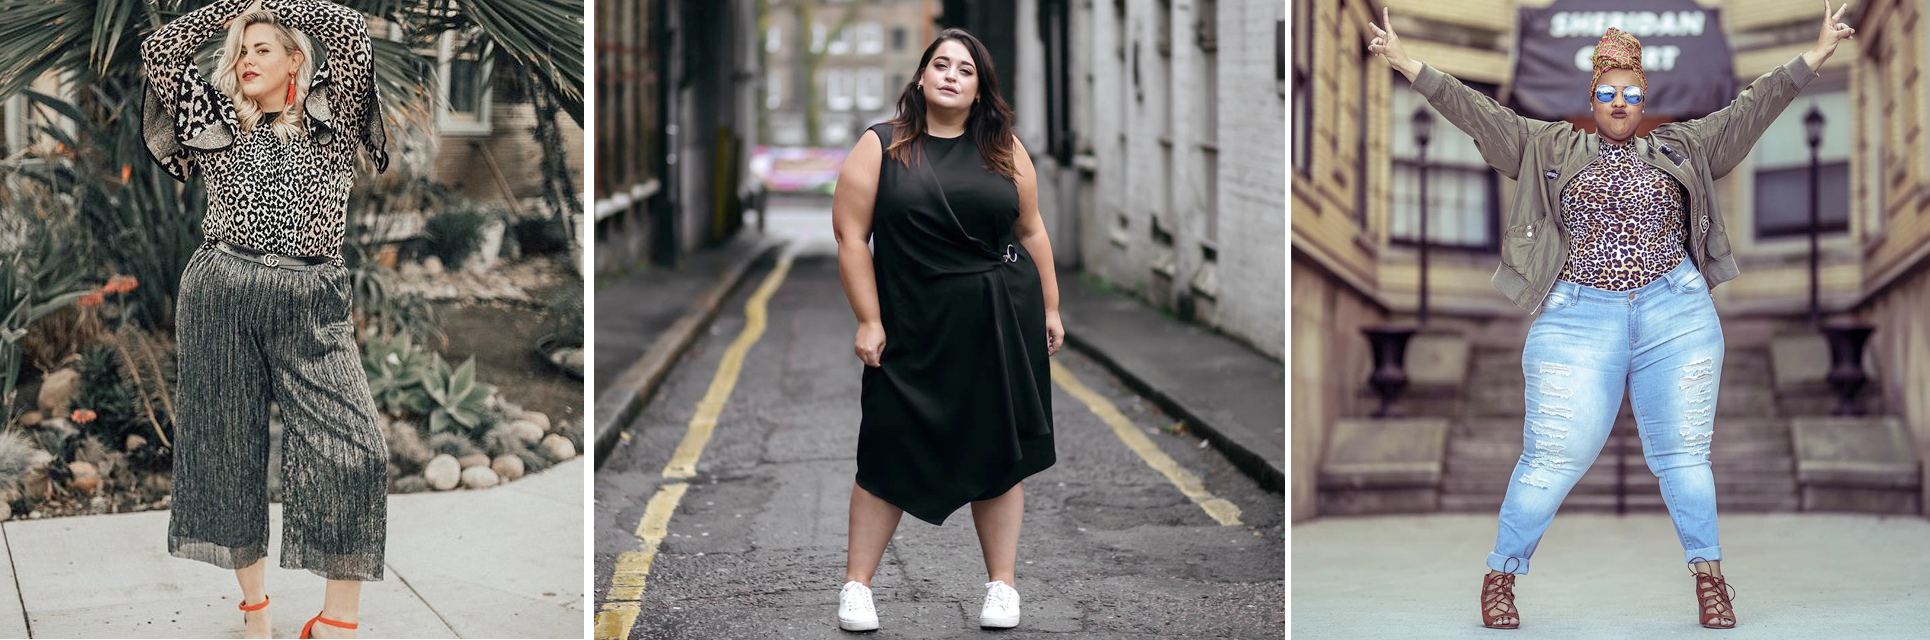 Plus size style inspiration for 2018: Alex Michael May, Danielle Vanier and Leah Vernon